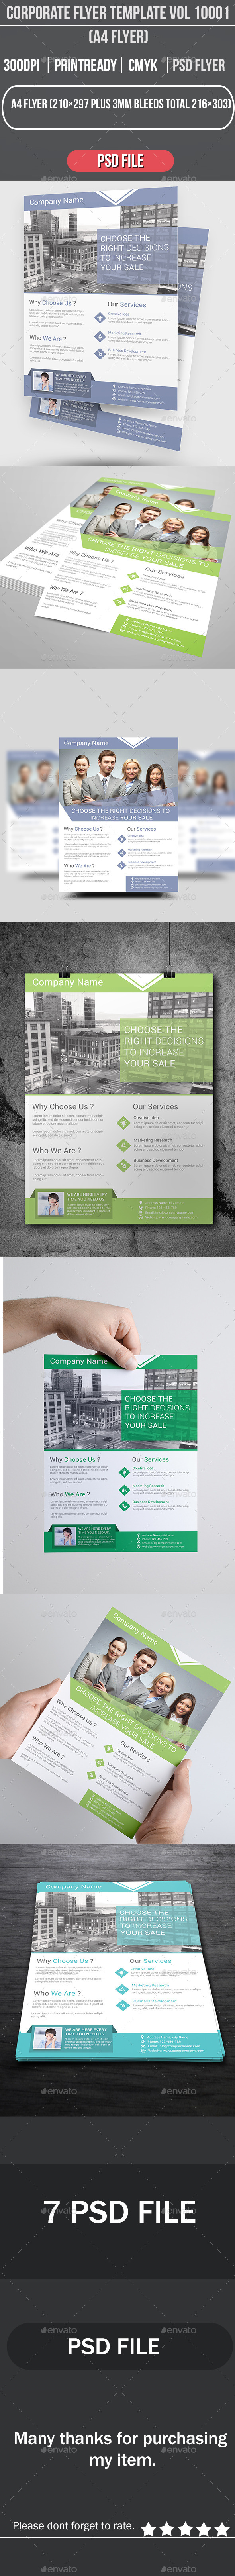 GraphicRiver Corporate Flyer Template Vol 10001 8885151